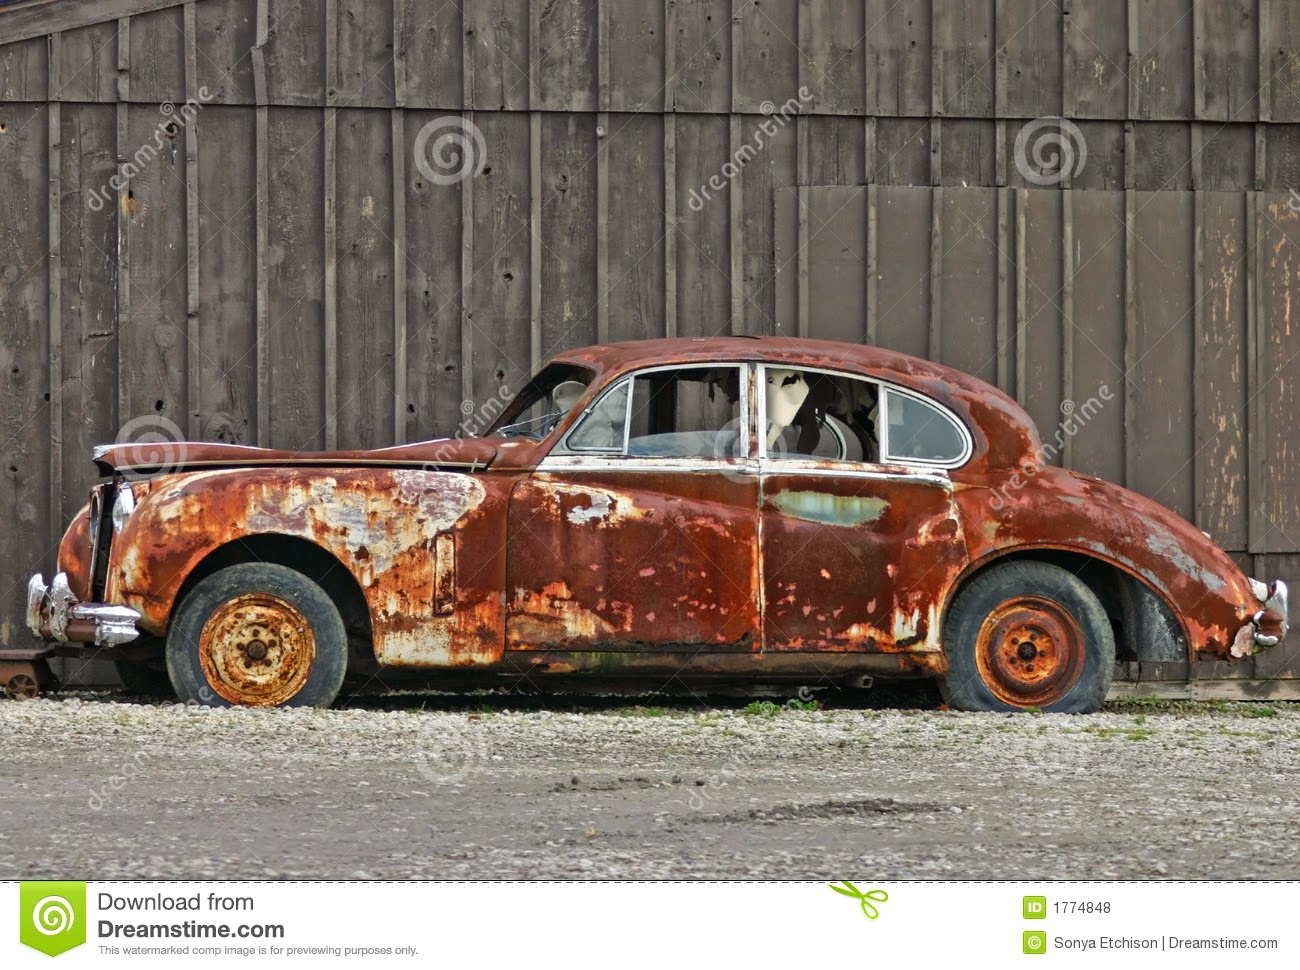 The Automobile and American Life: Nothing I hate more than rusty cars!.